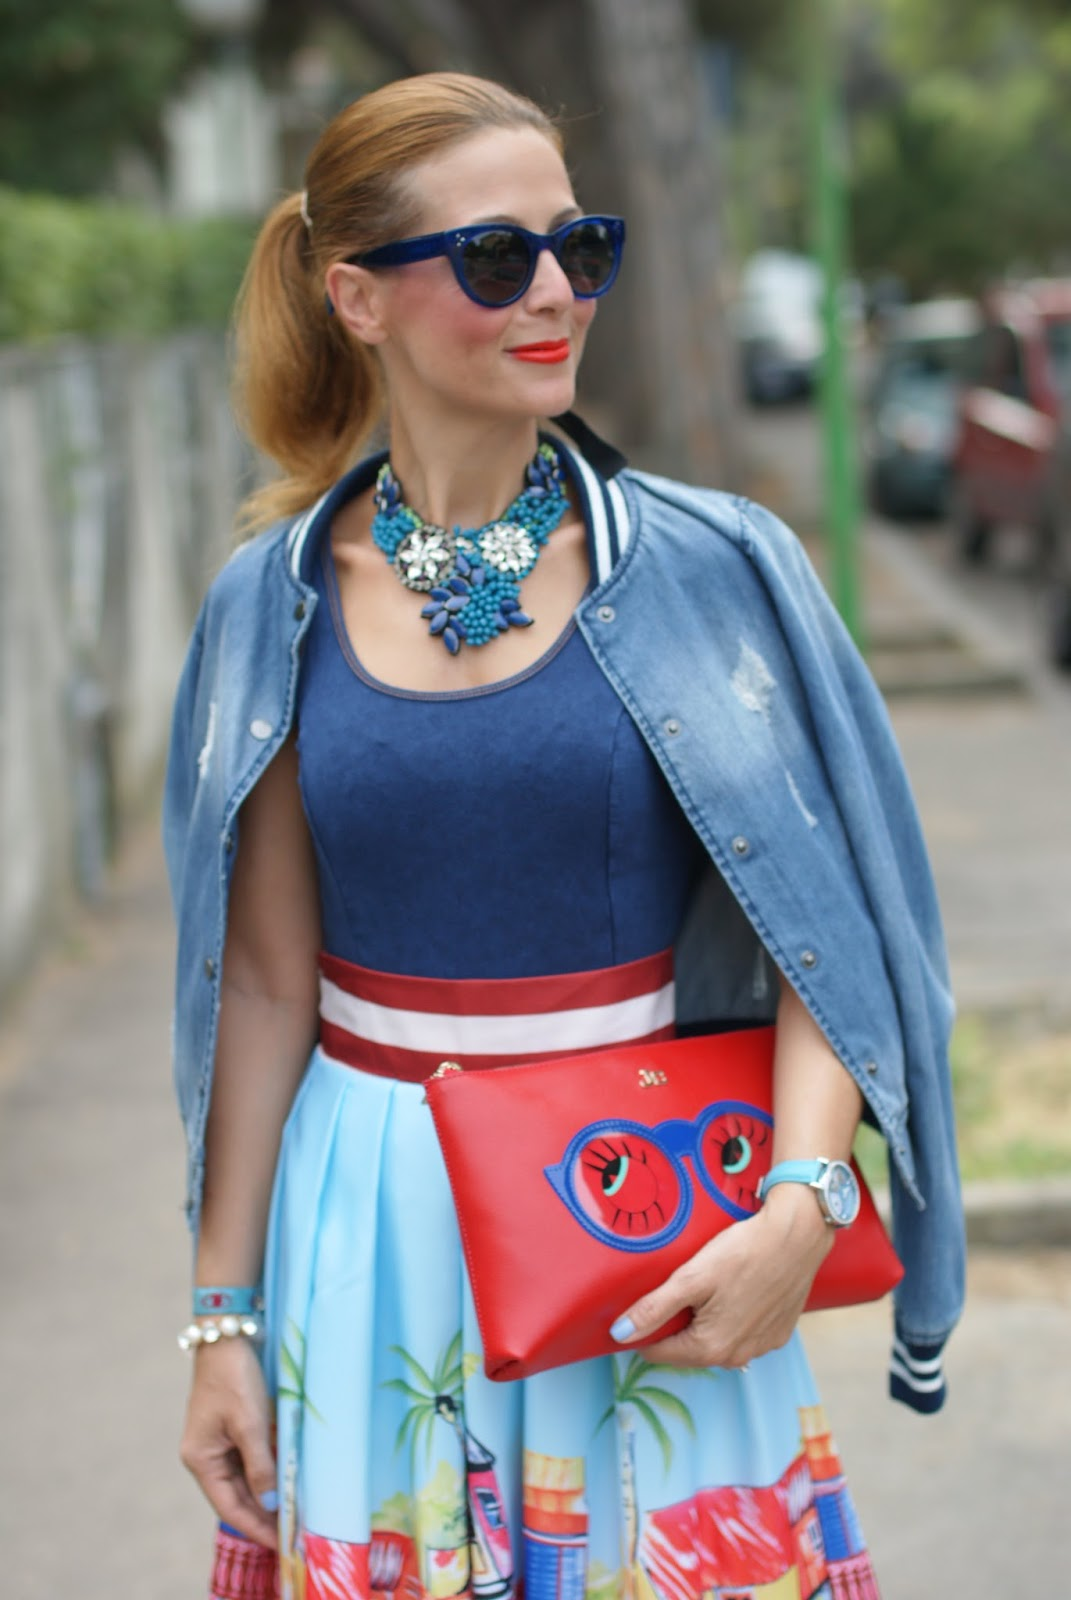 Hype Glasses new summer 2015 collection, SimonaB necklace and Jack y Celine cartoon glasses clutch  on Fashion and Cookies fashion blog